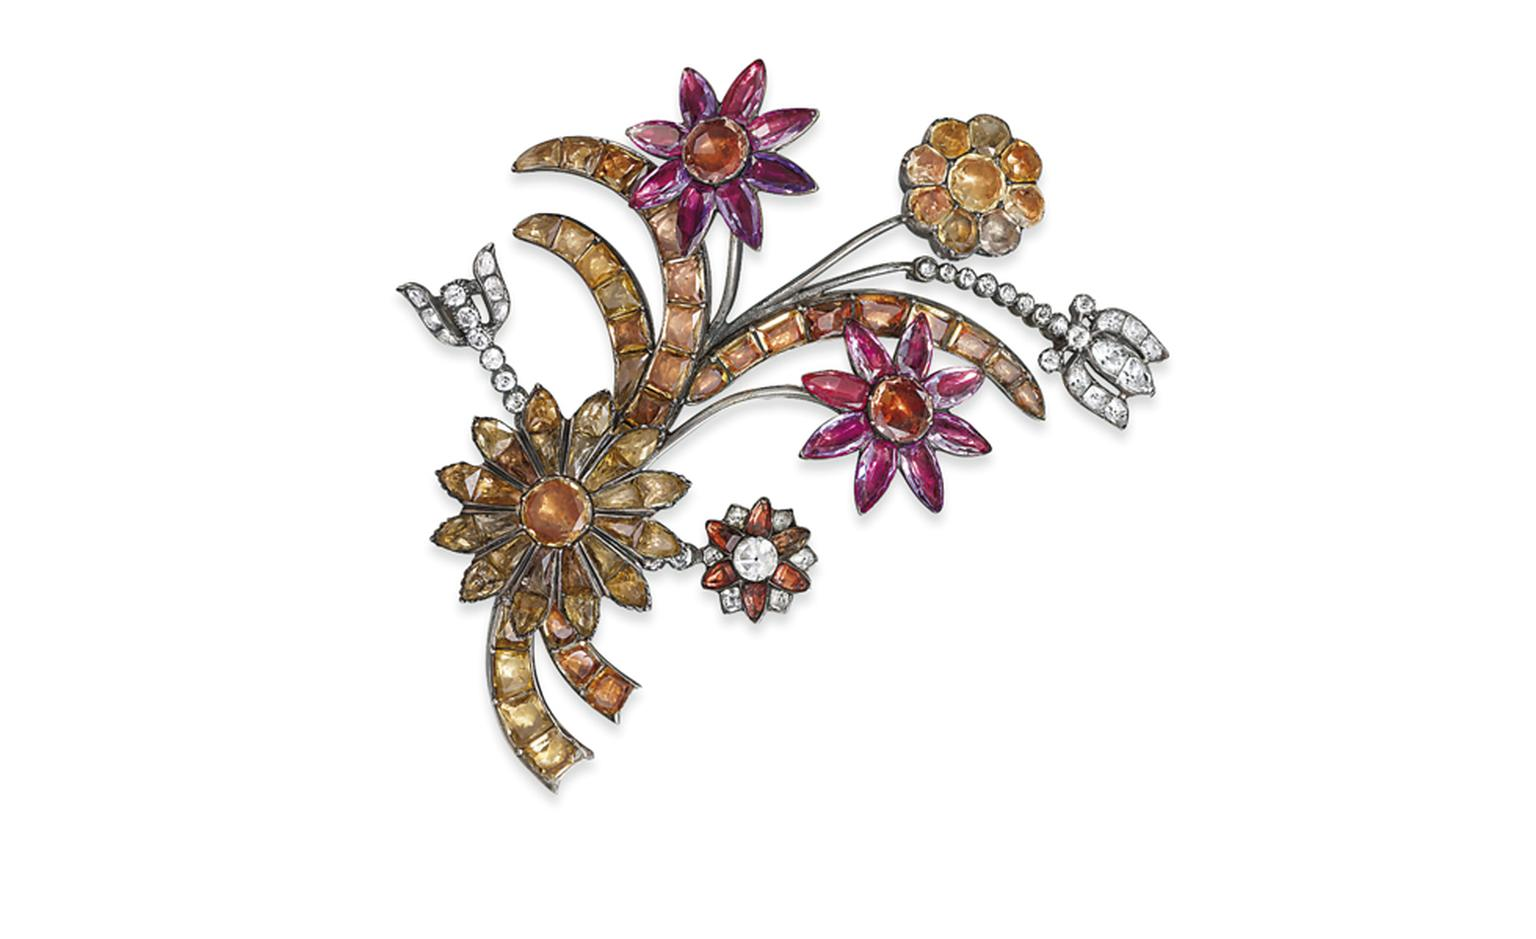 Lot 167. A rare 18th century topaz and paste flower brooch. Estimate £10,000-£15,000. SOLD FOR £12,500